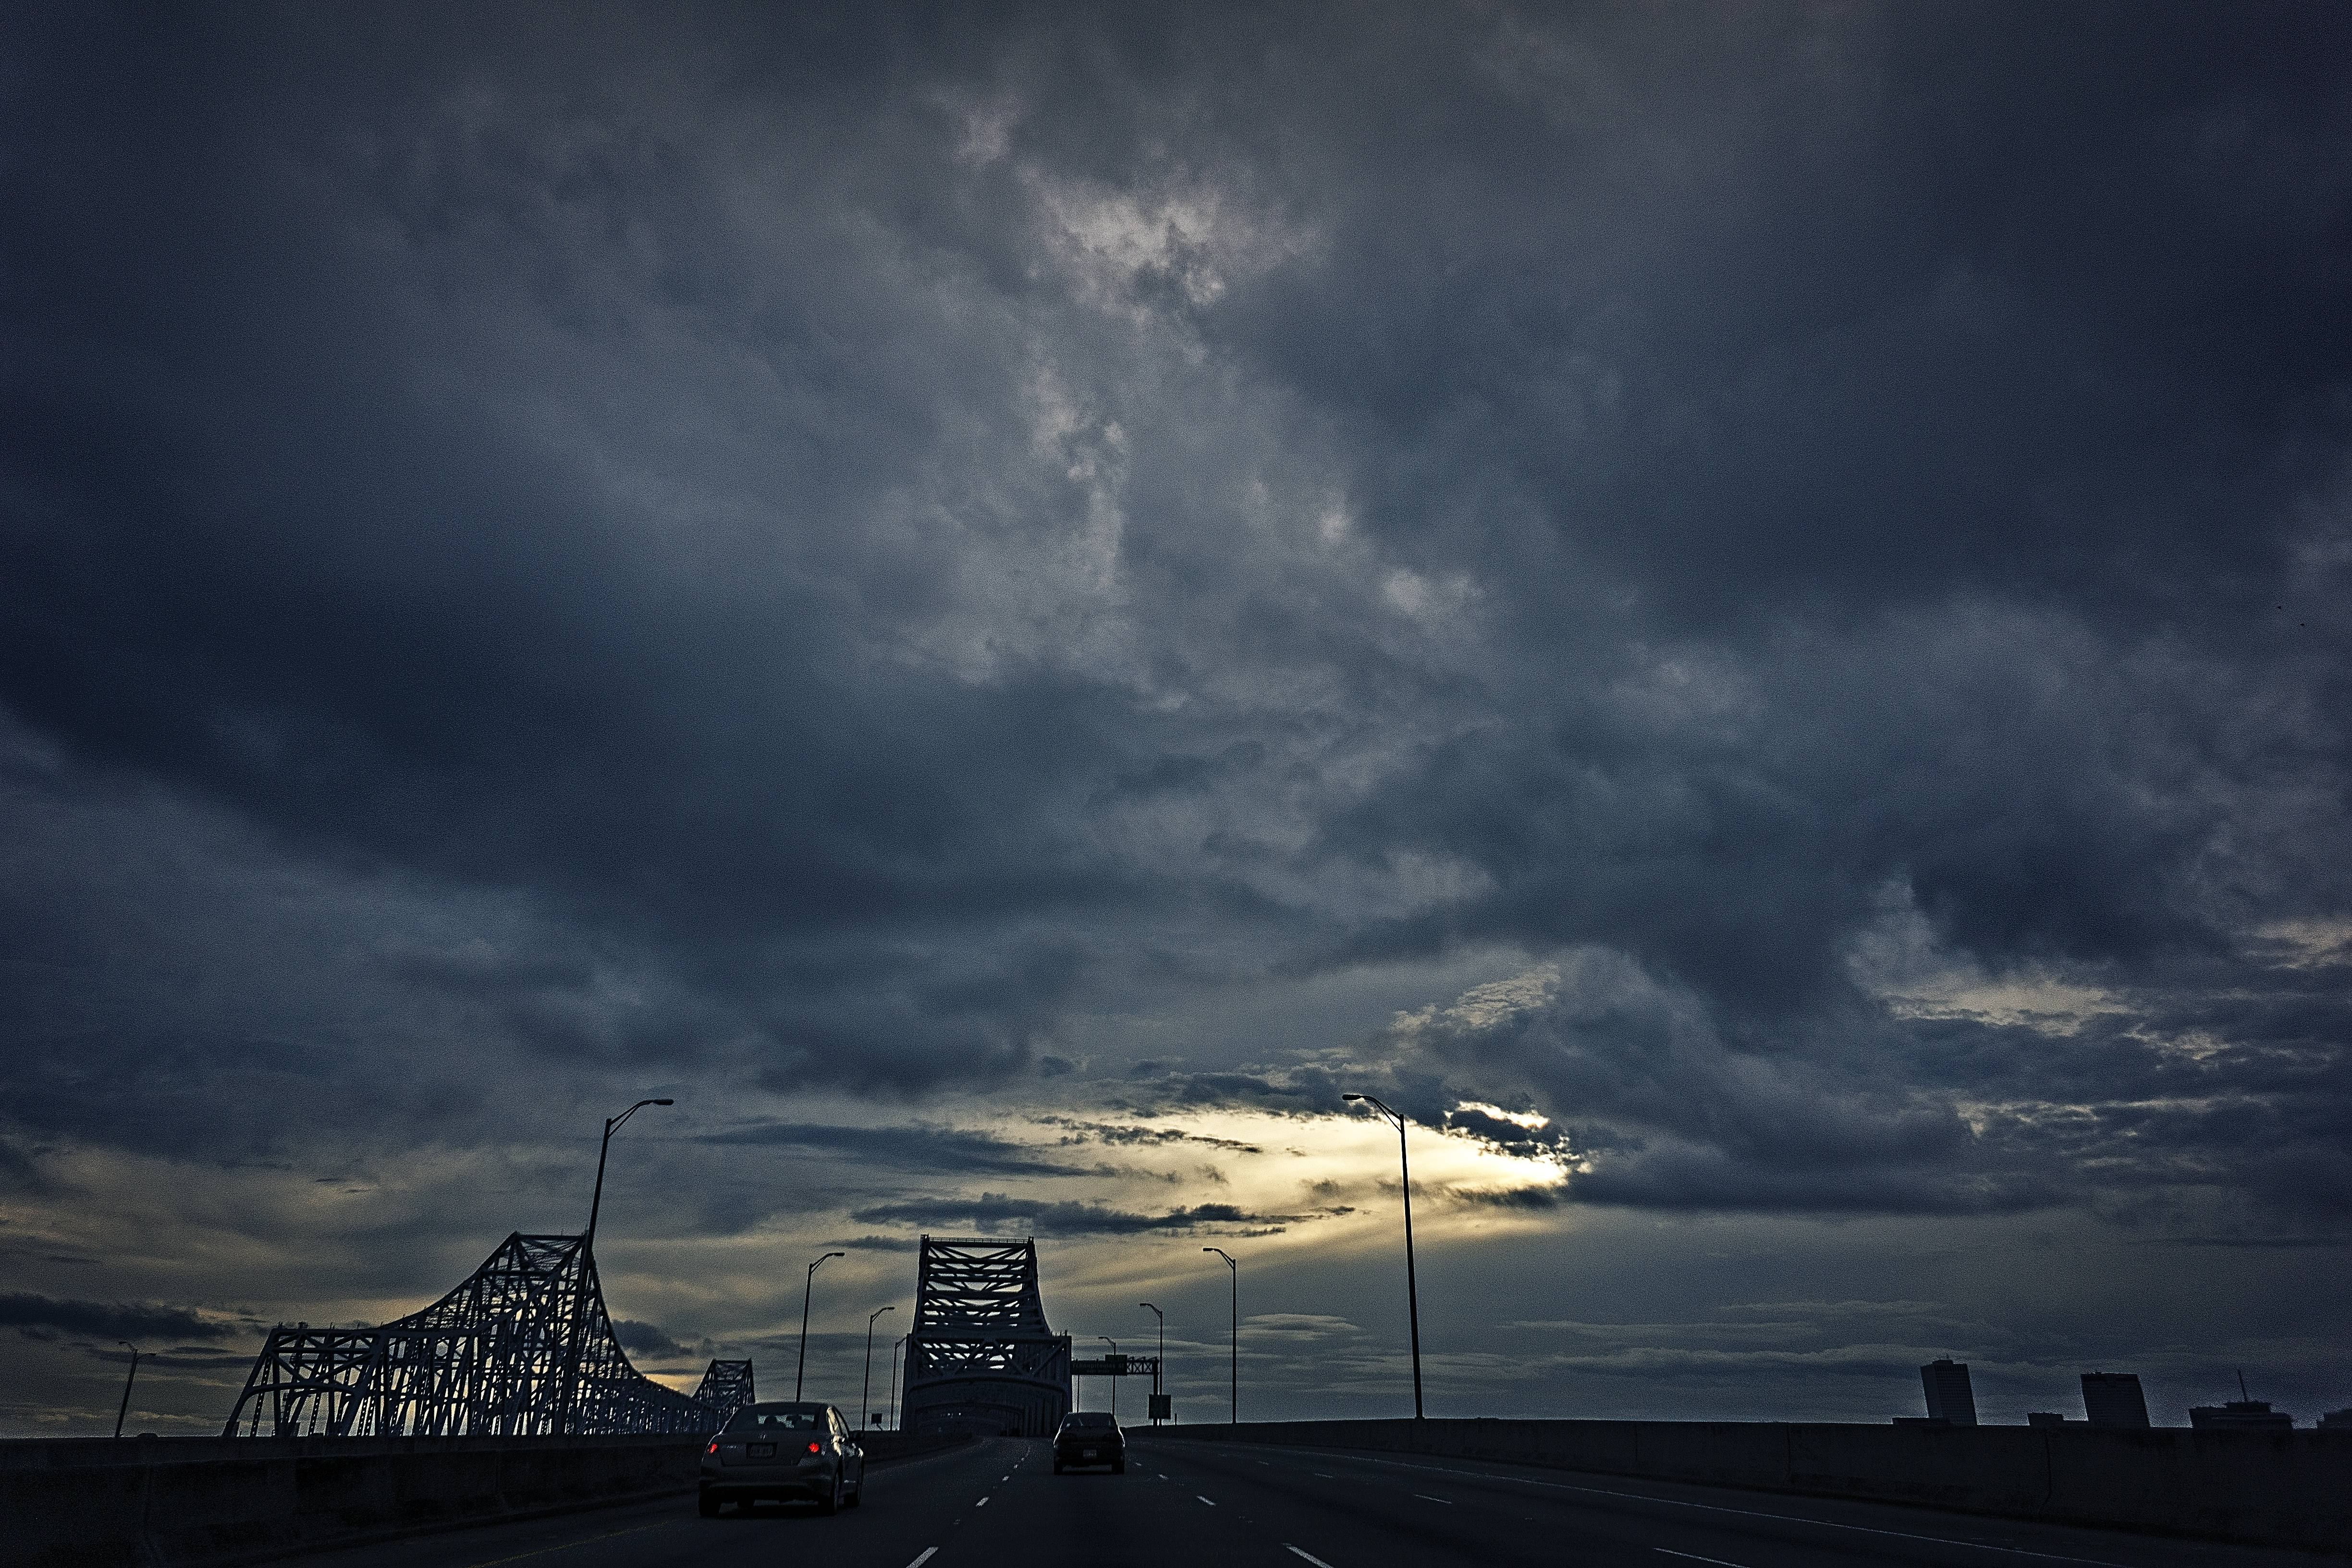 Storm Clouds over The Mississippi River.